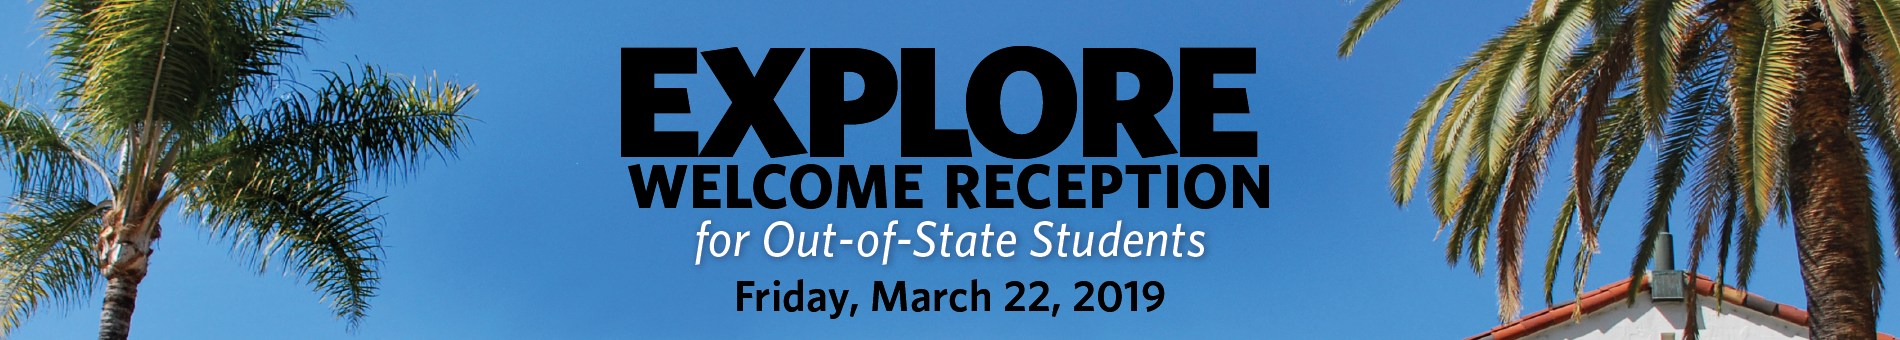 Explore Welcome Reception for Out-of-State Students on Friday, March 22, 2019